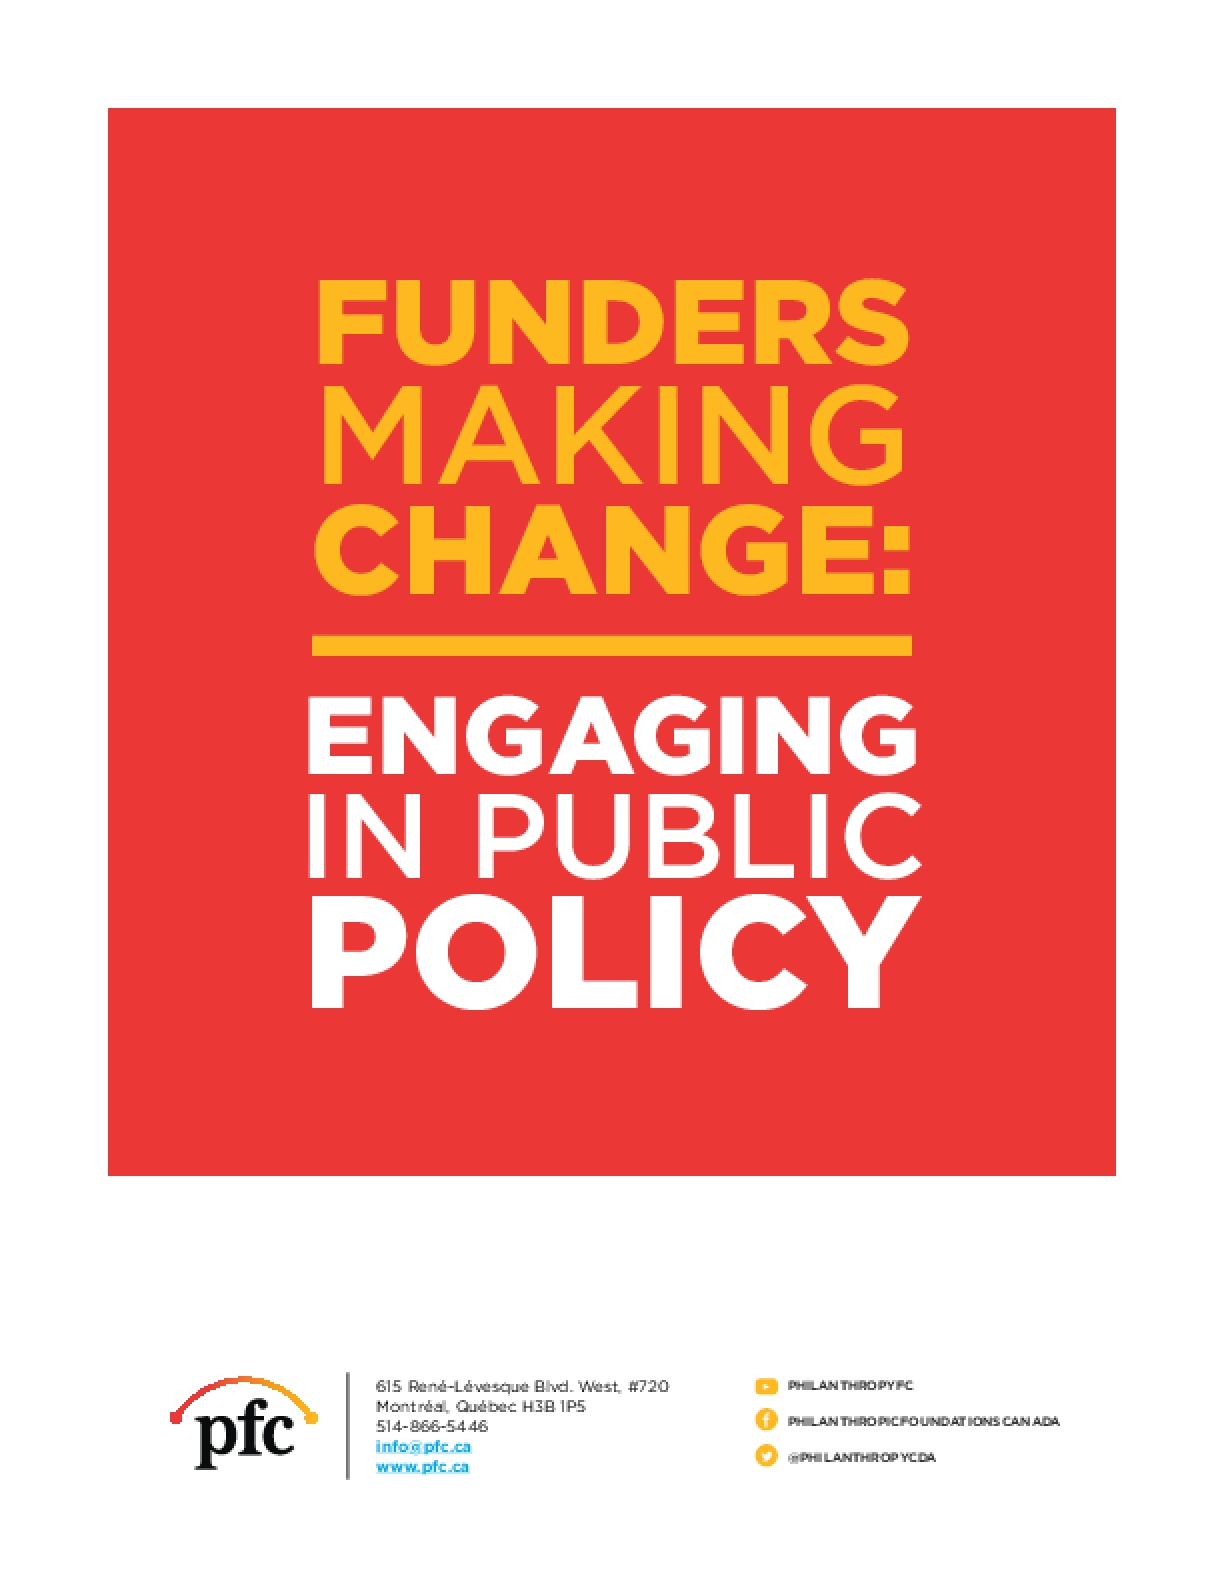 Funders Making Change: Engaging in Public Policy